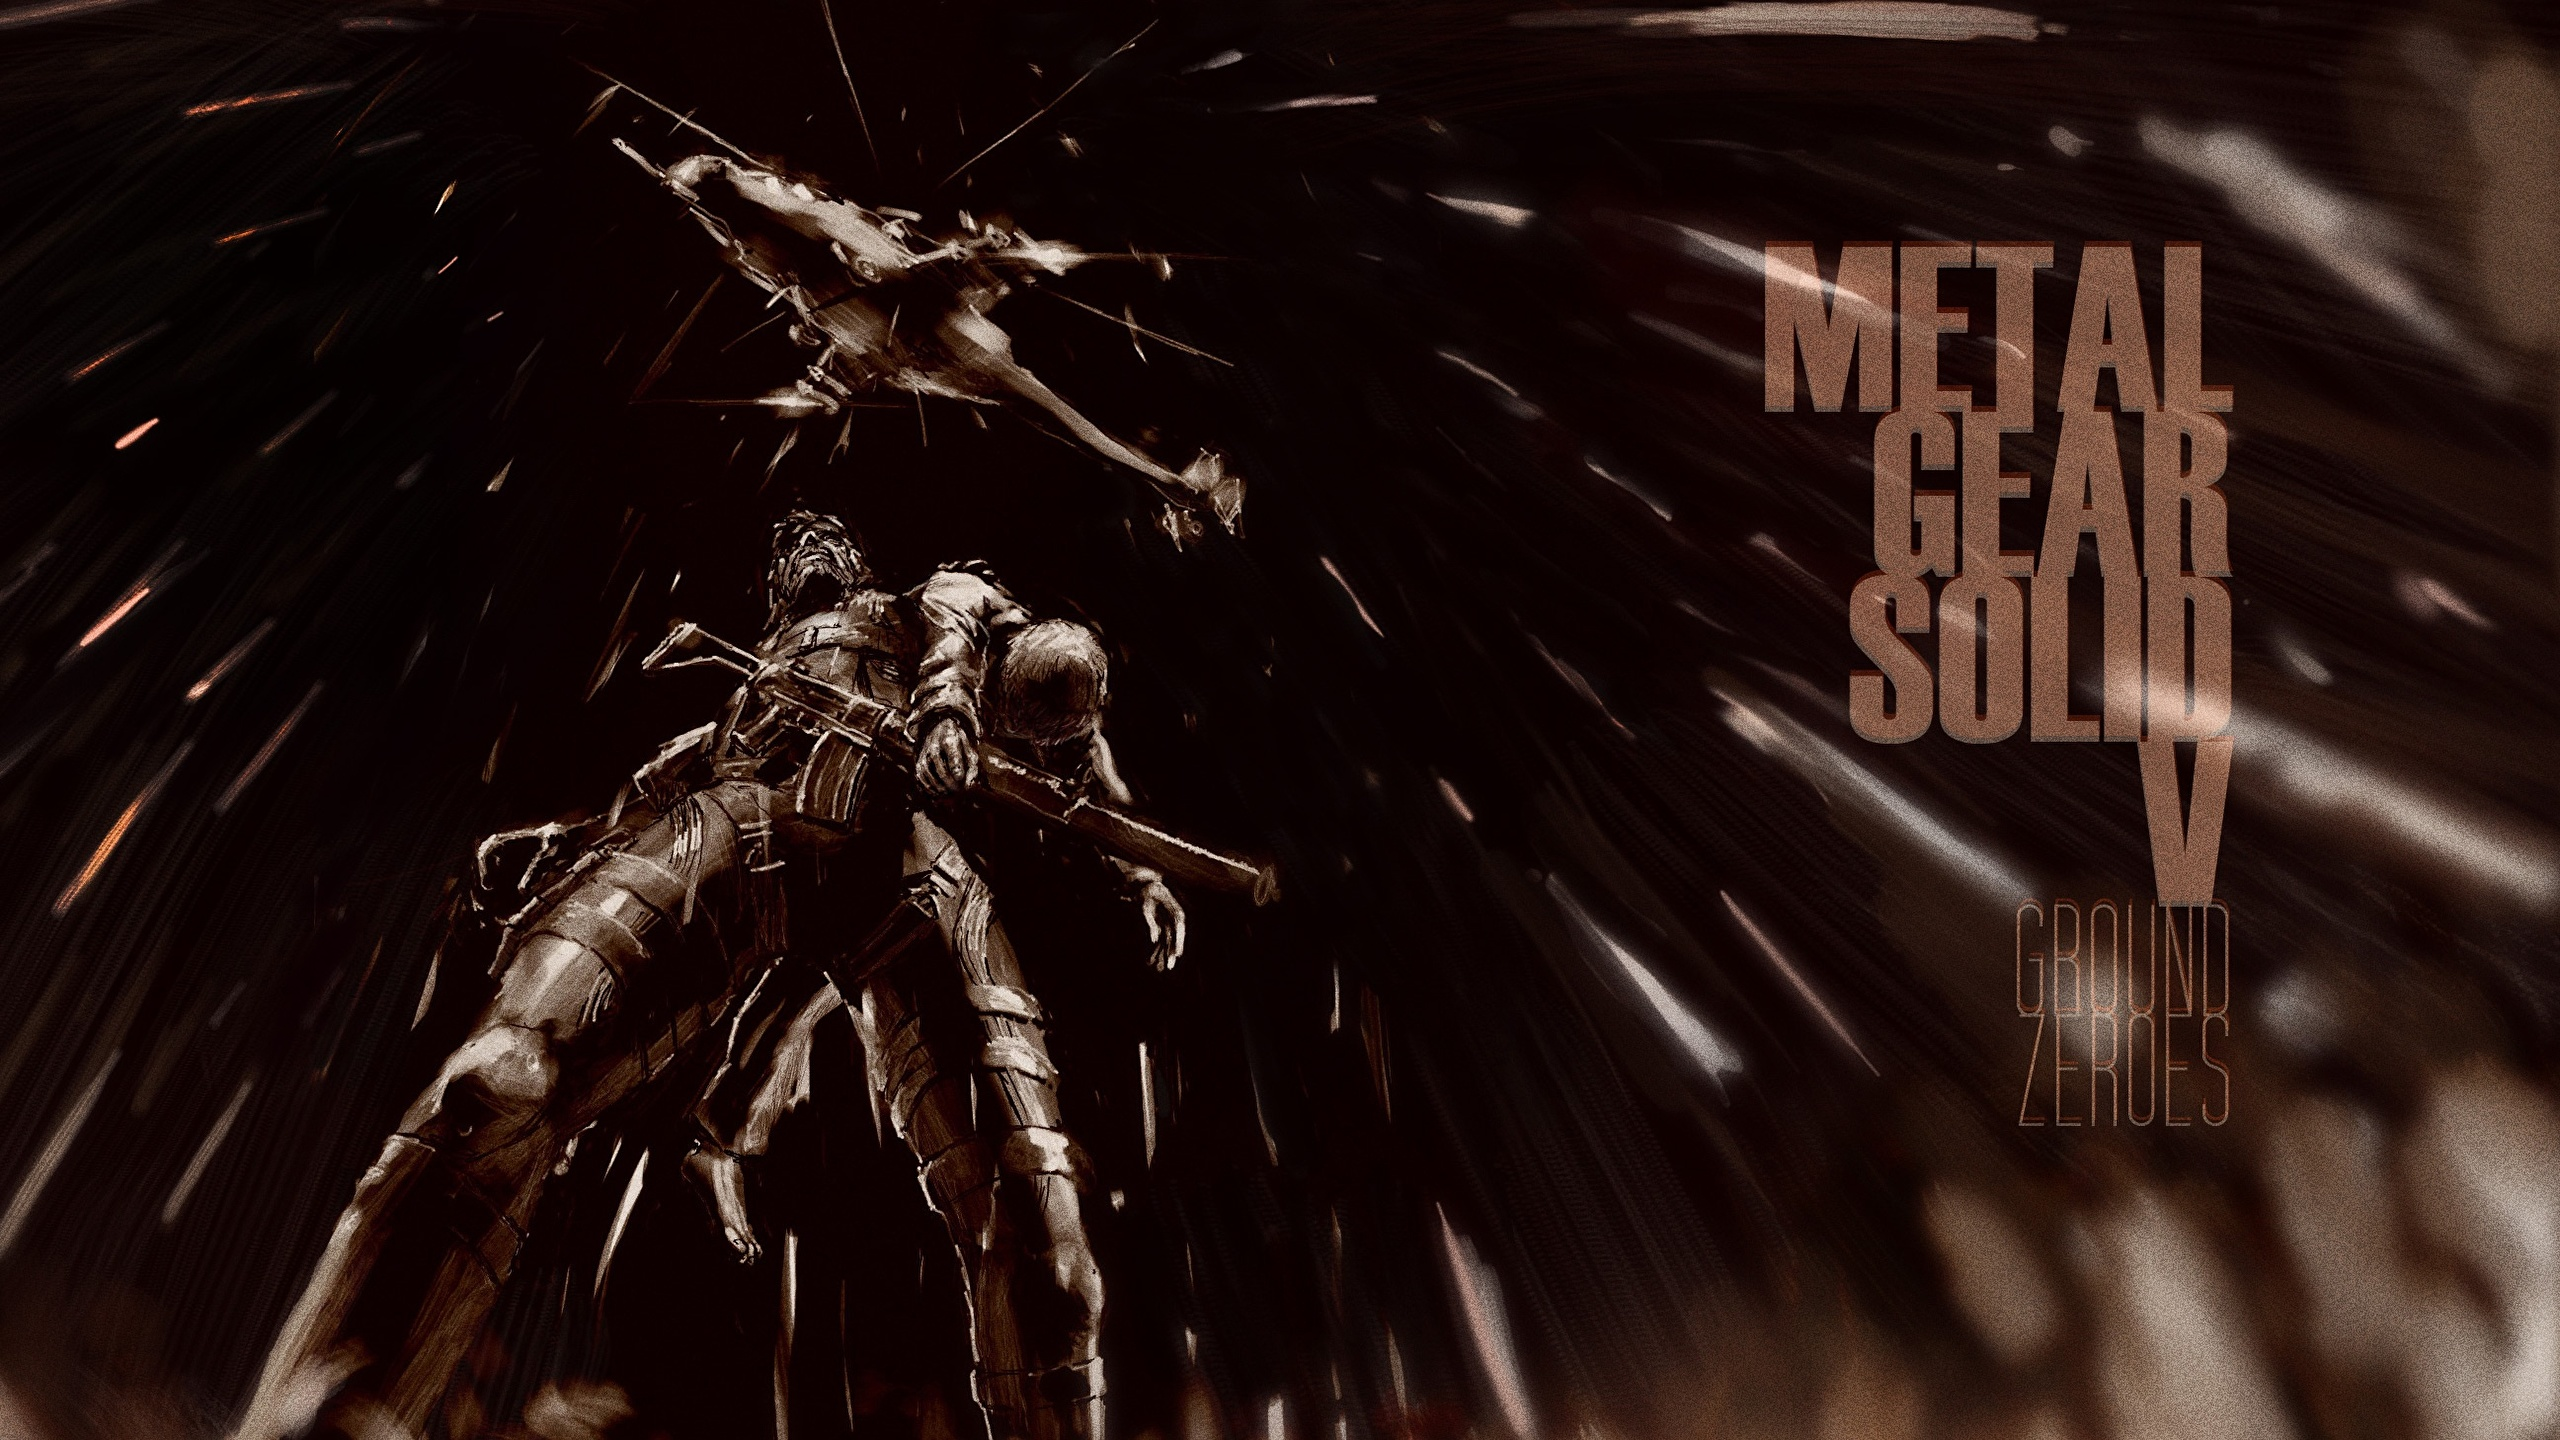 Wallpaper Metal Gear Solid V Solid Snake Games 2560x1440